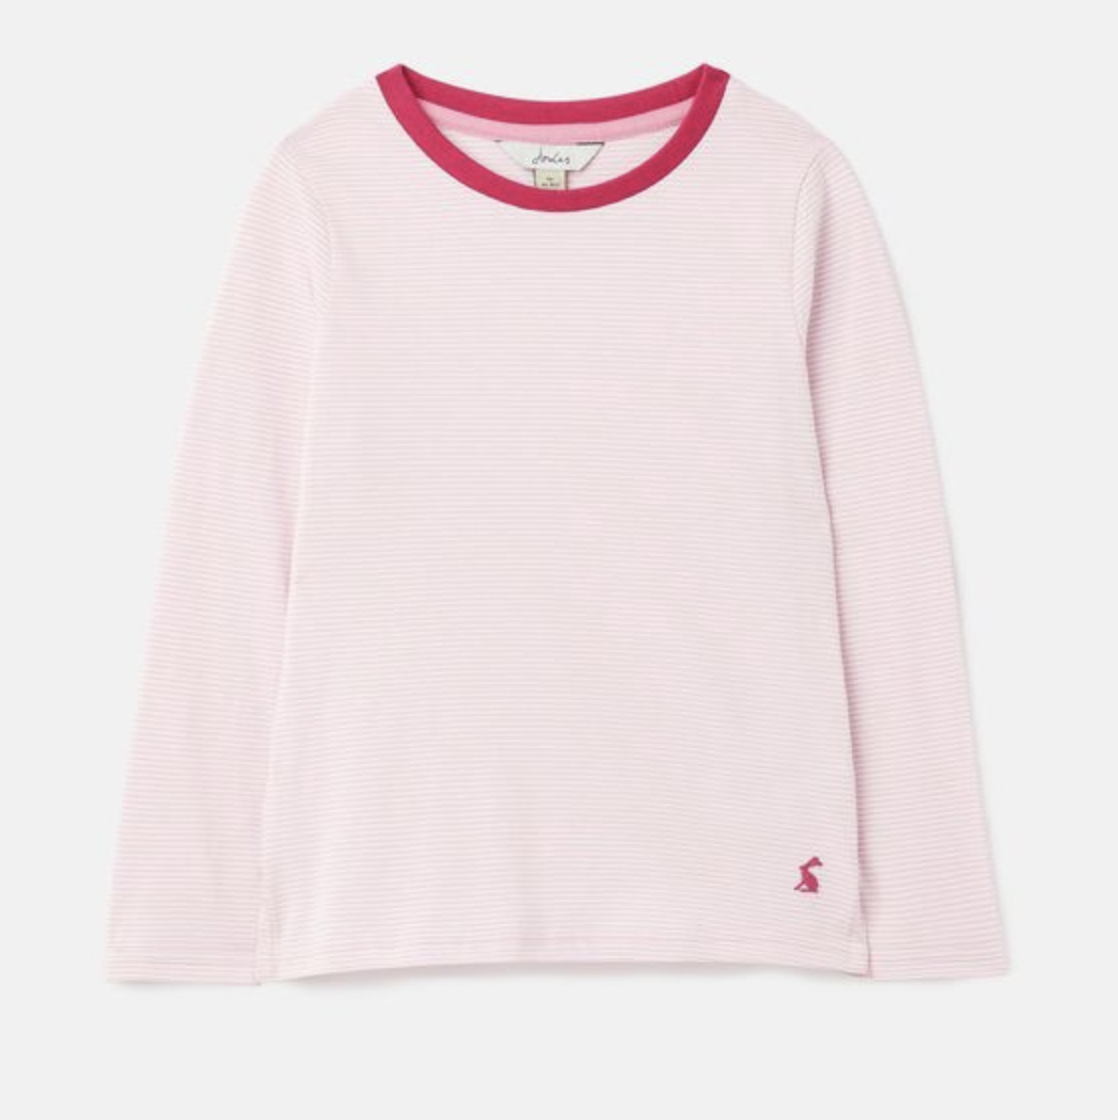 JOULES PASCAL LONG SLEEVE TOP